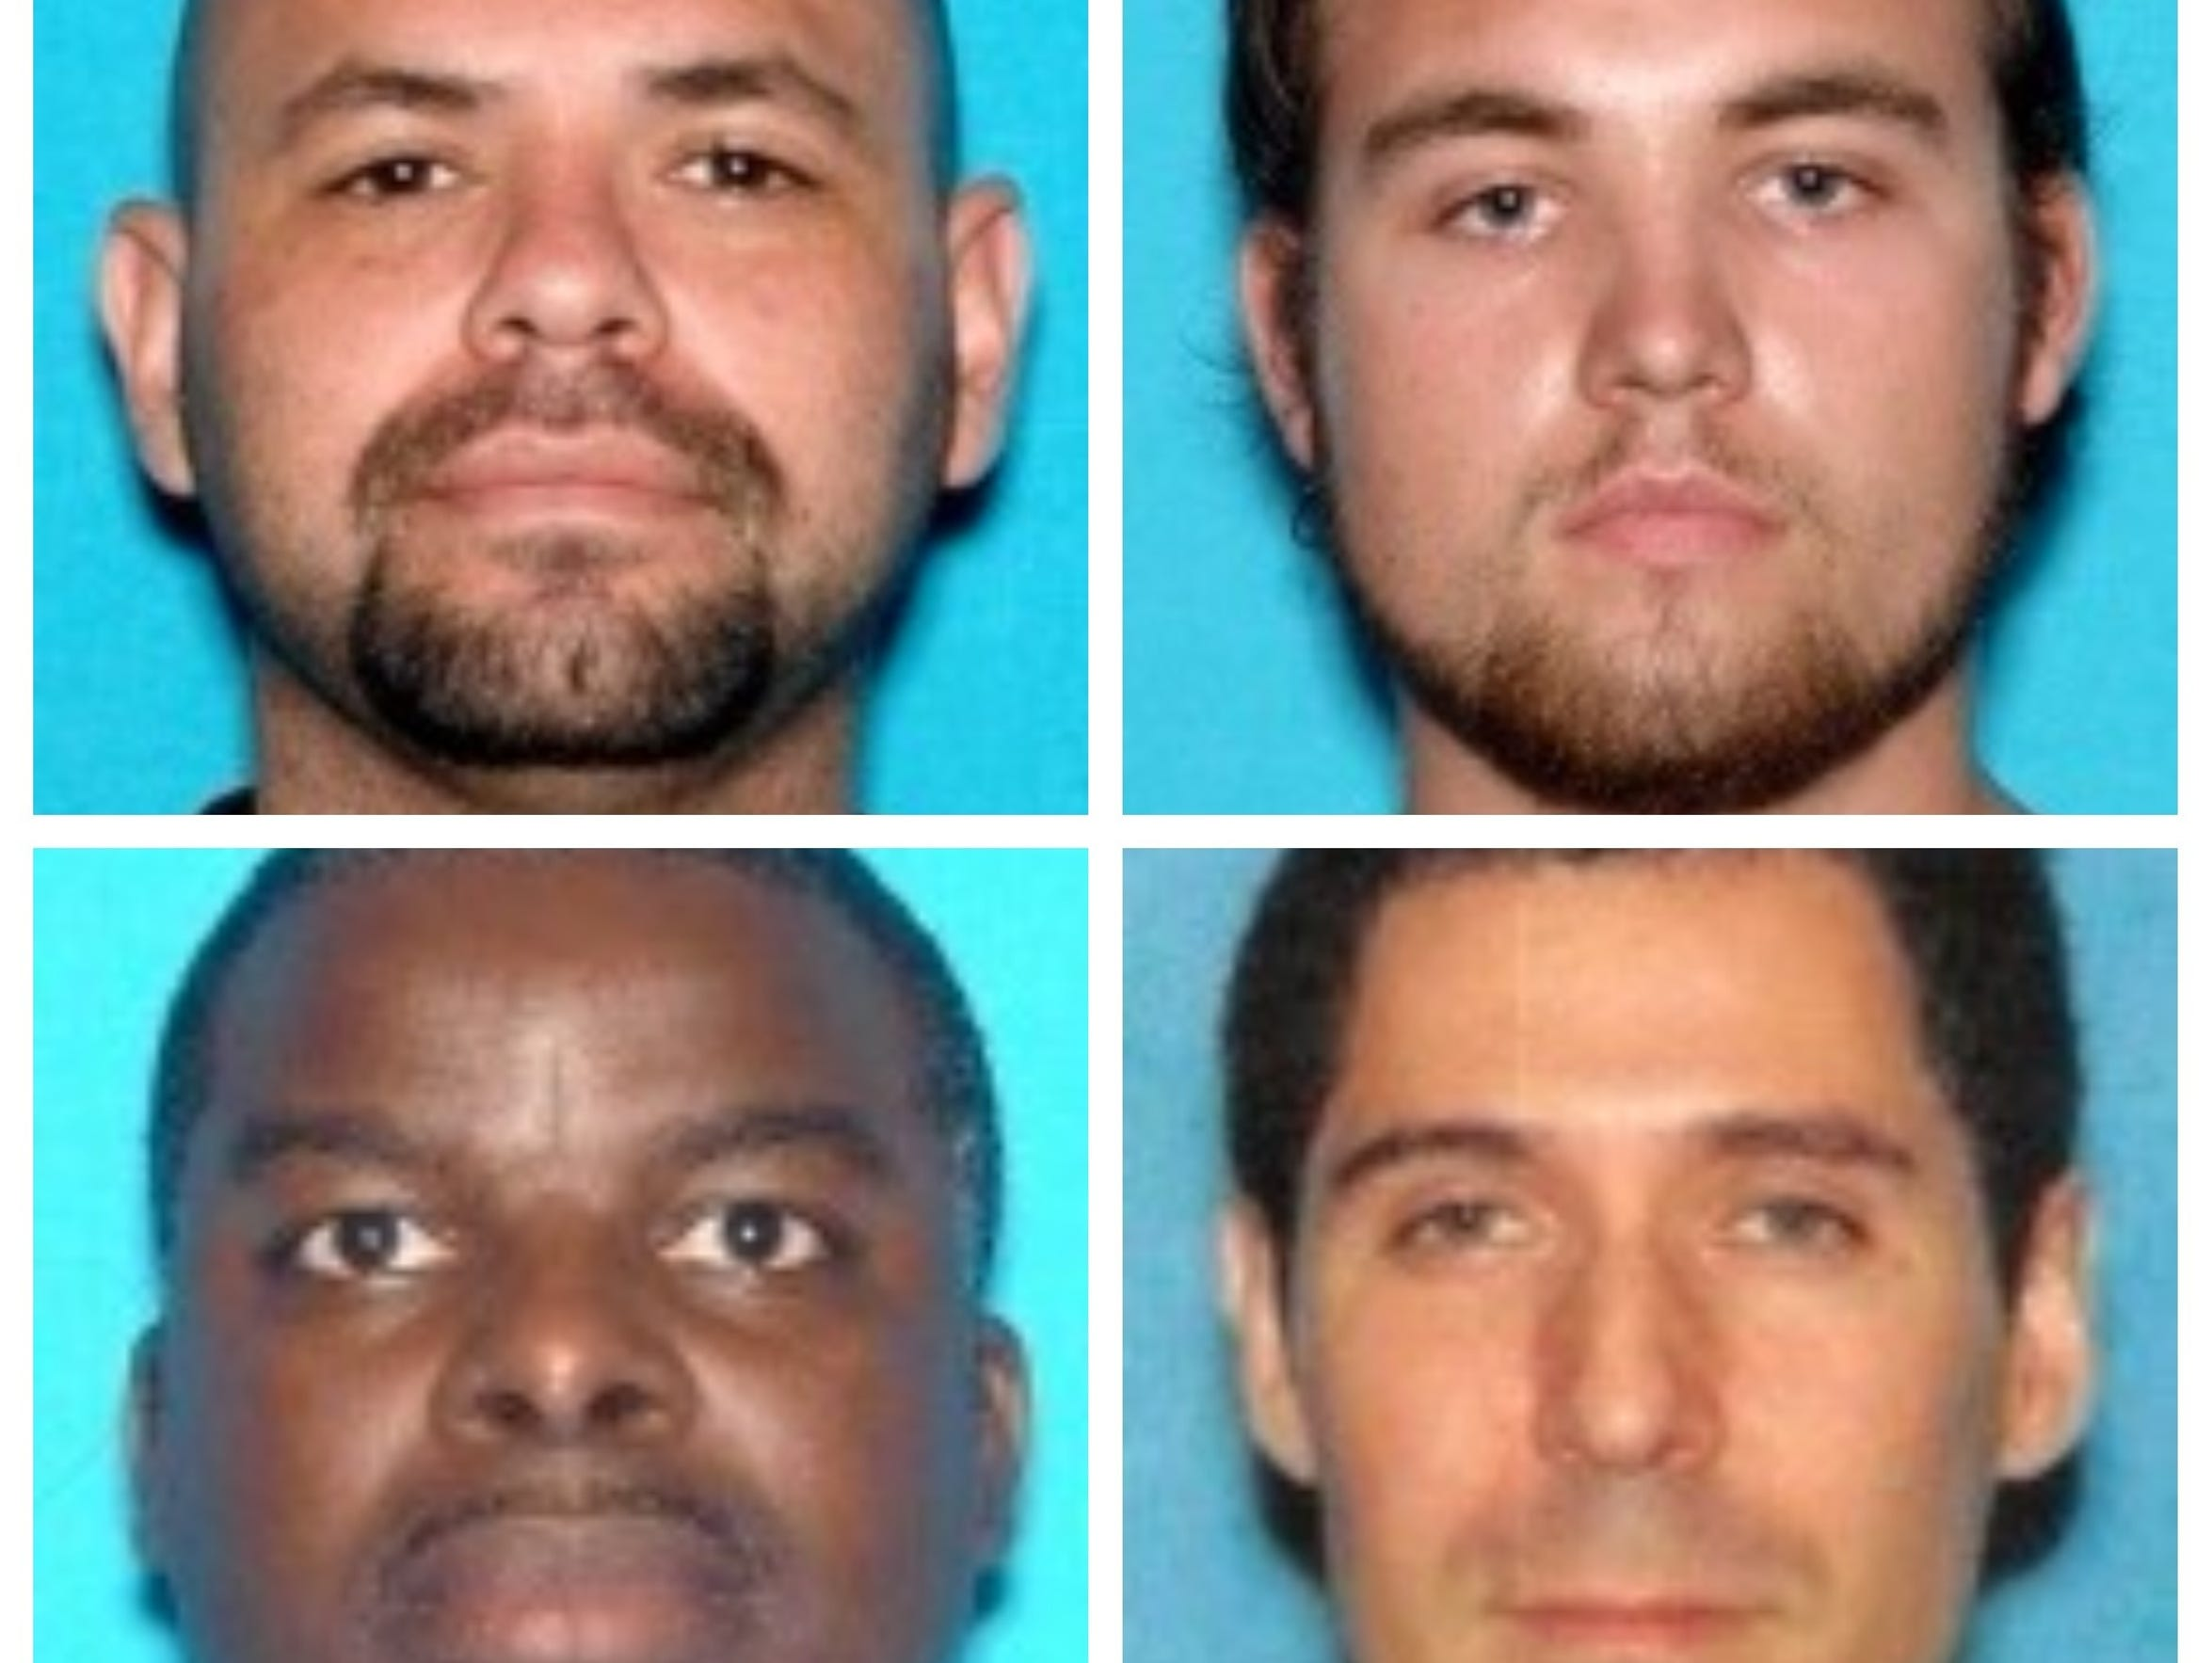 From left to right, clockwise: George Castillo, 36,